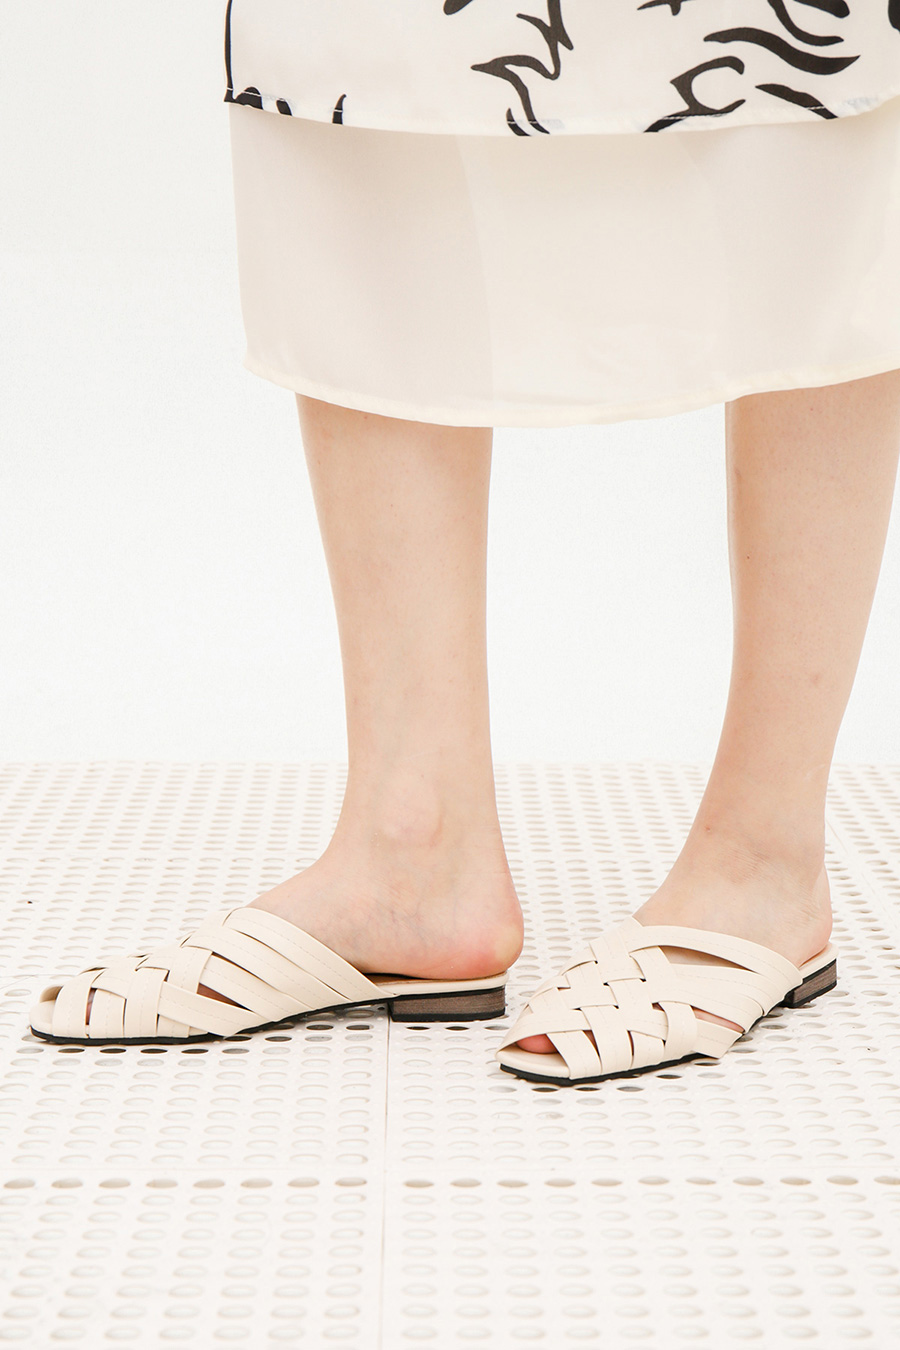 COLOMBA SHOES - IVORY